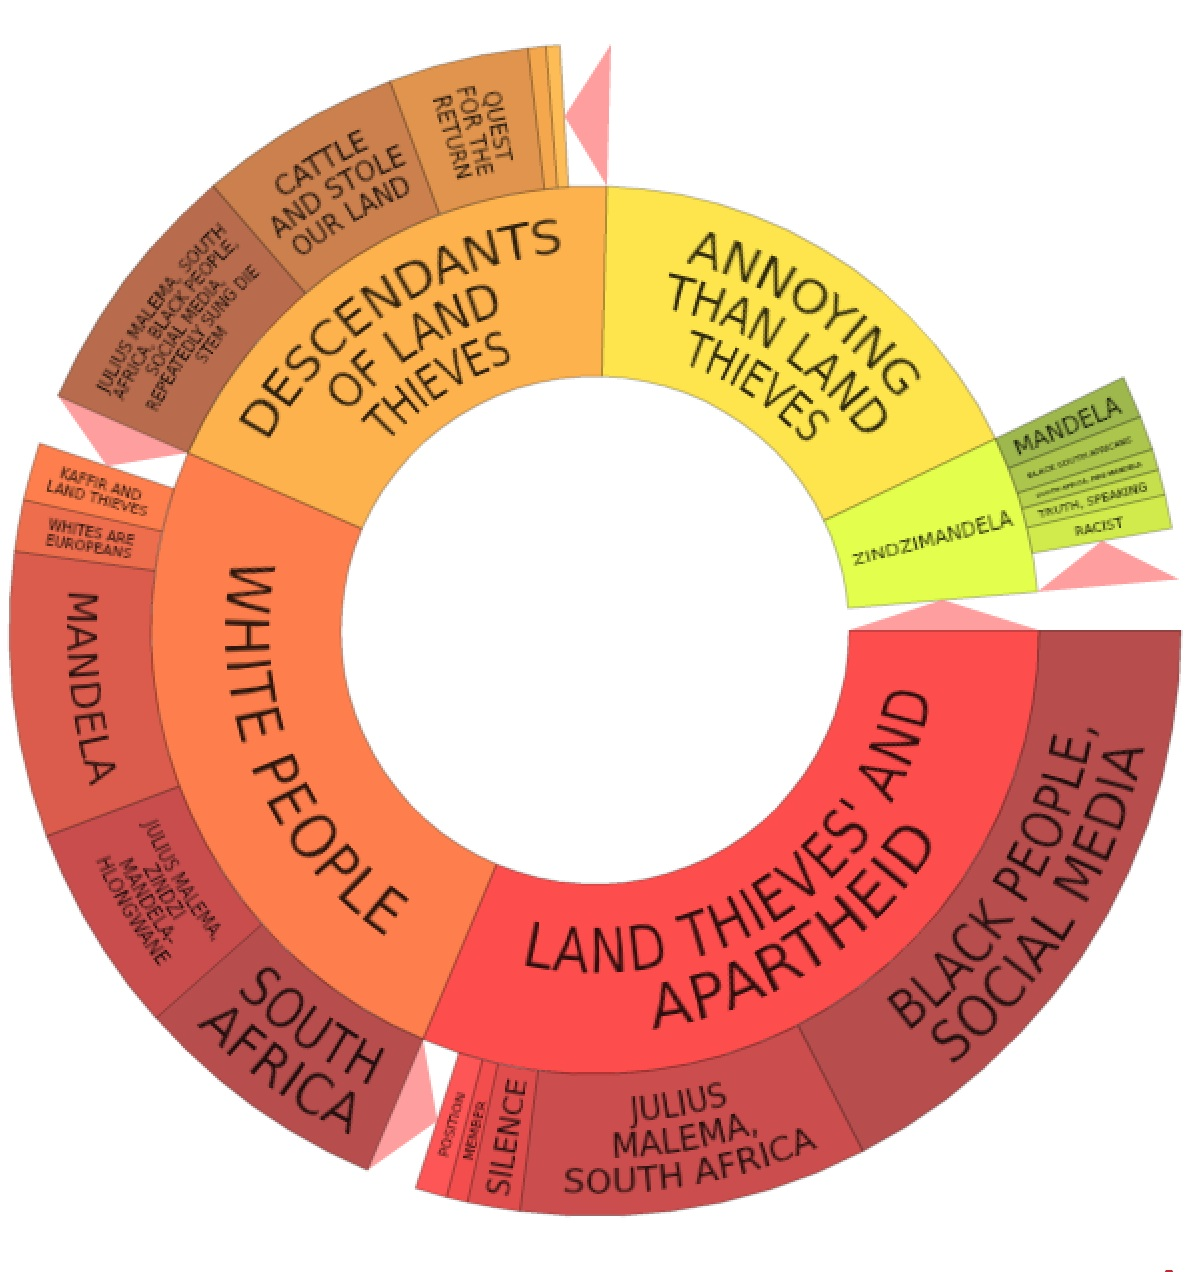 LAND+thieves+Topics+from+2019-06-07+to+2019-06-20.jpg